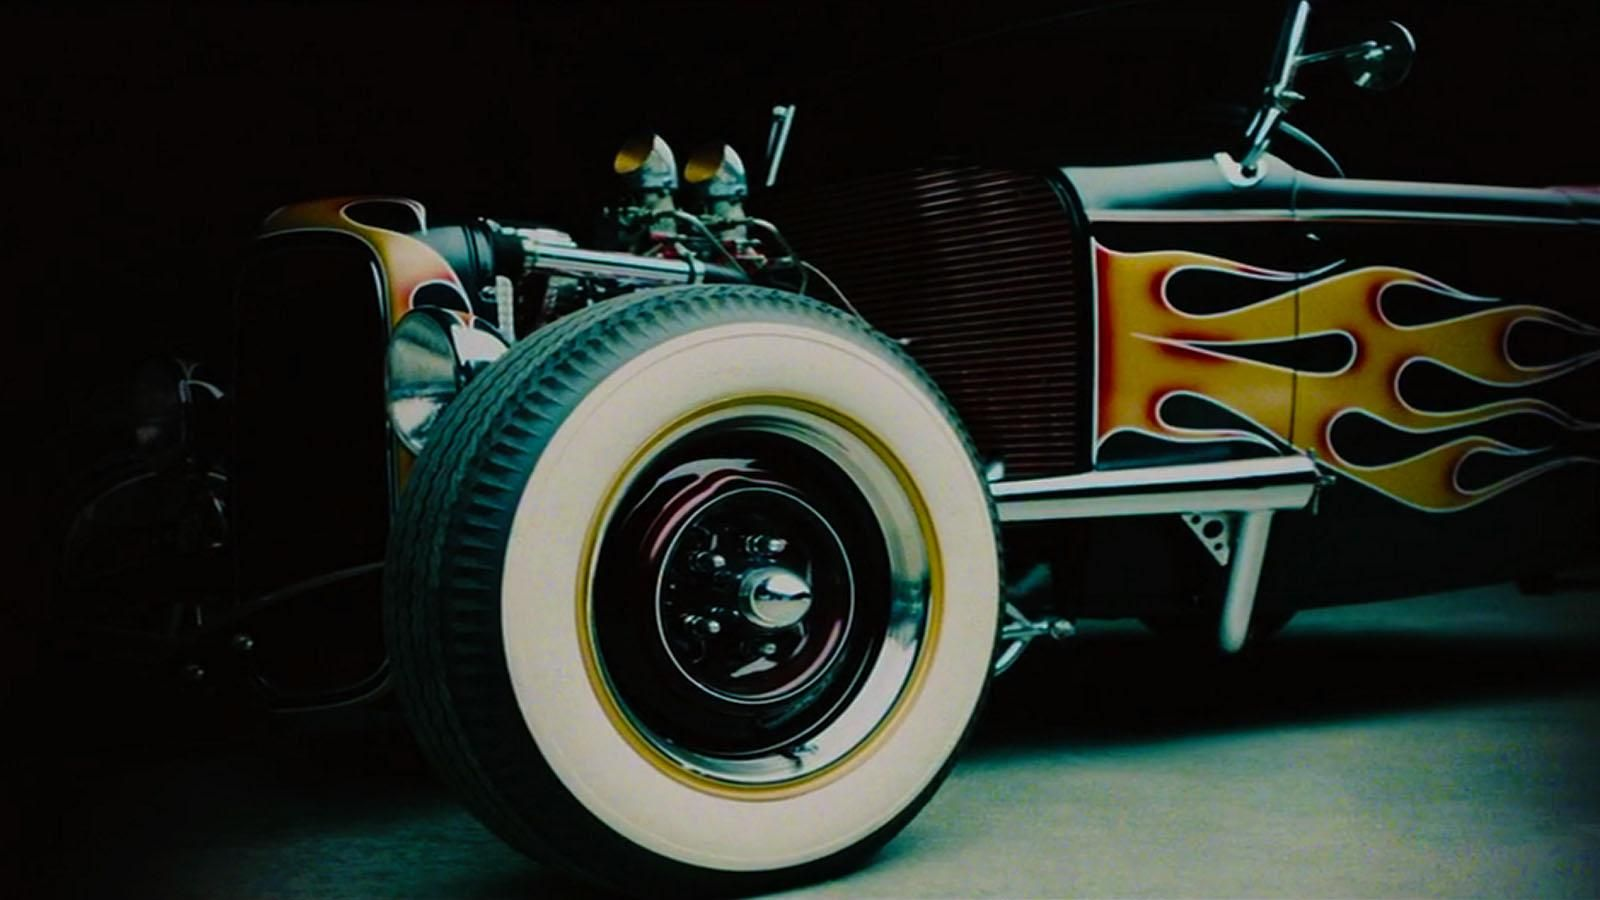 29+ Hot rod wallpaper for android Free